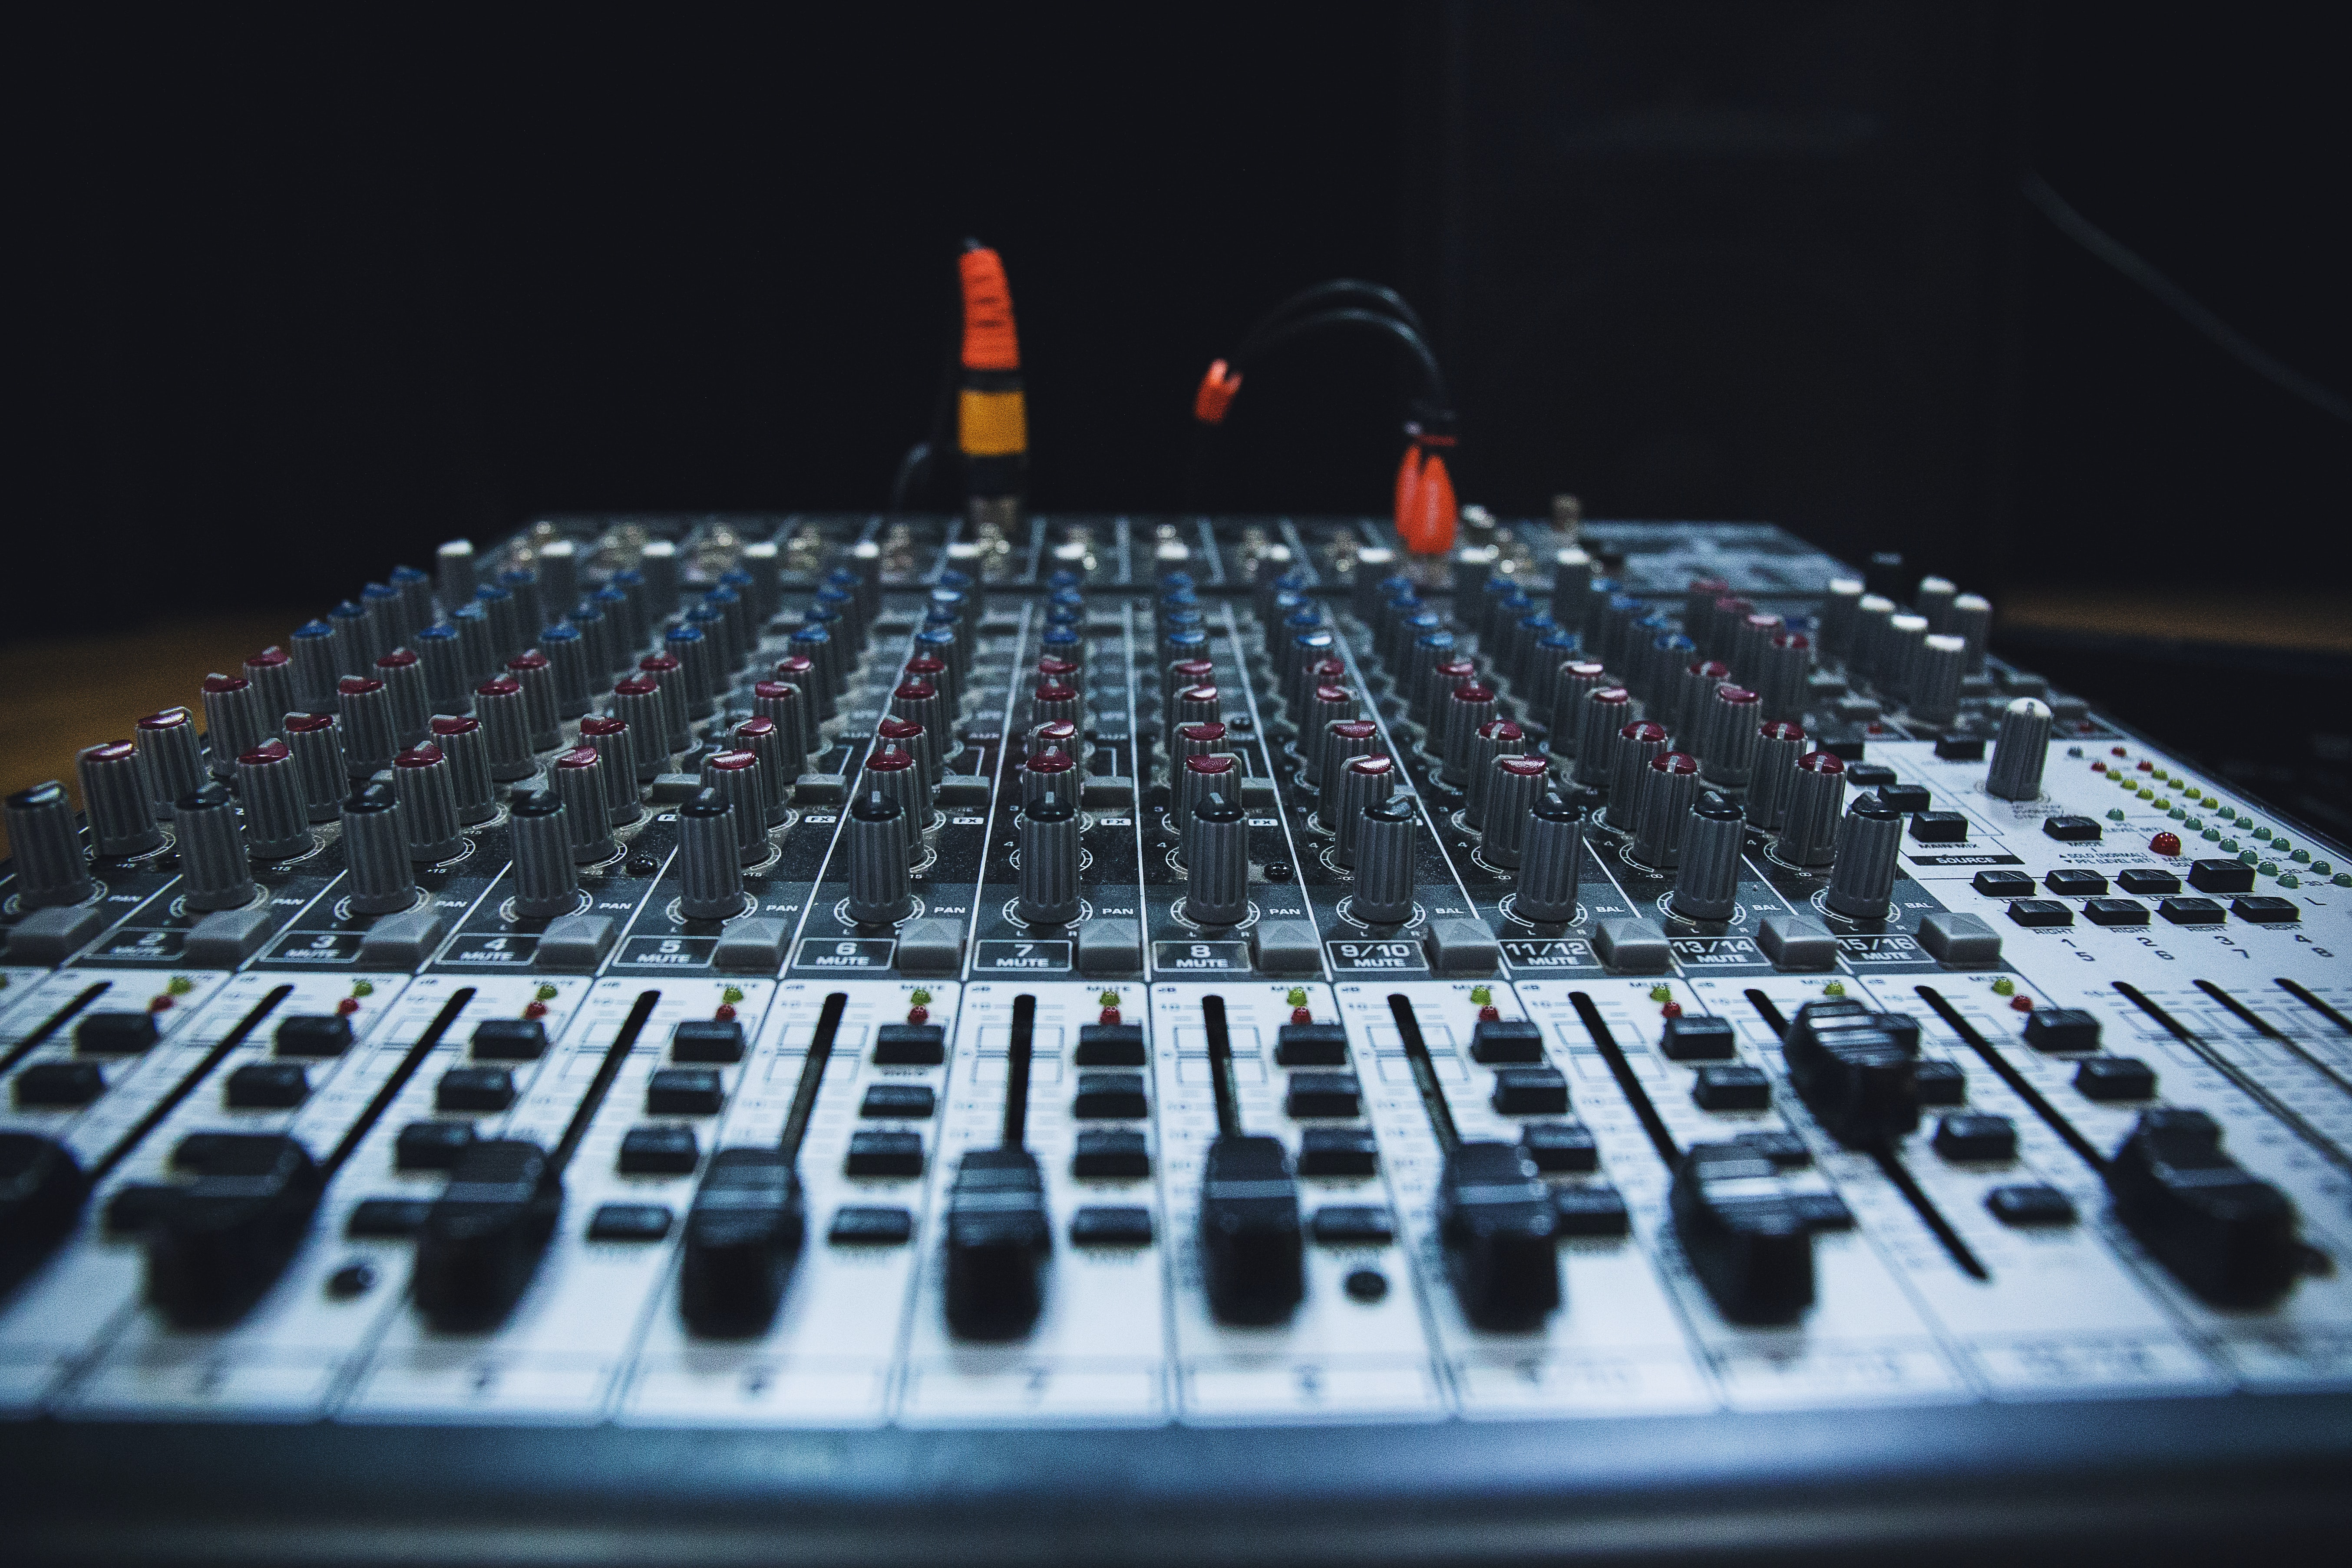 Even rows of dials on a mixing console